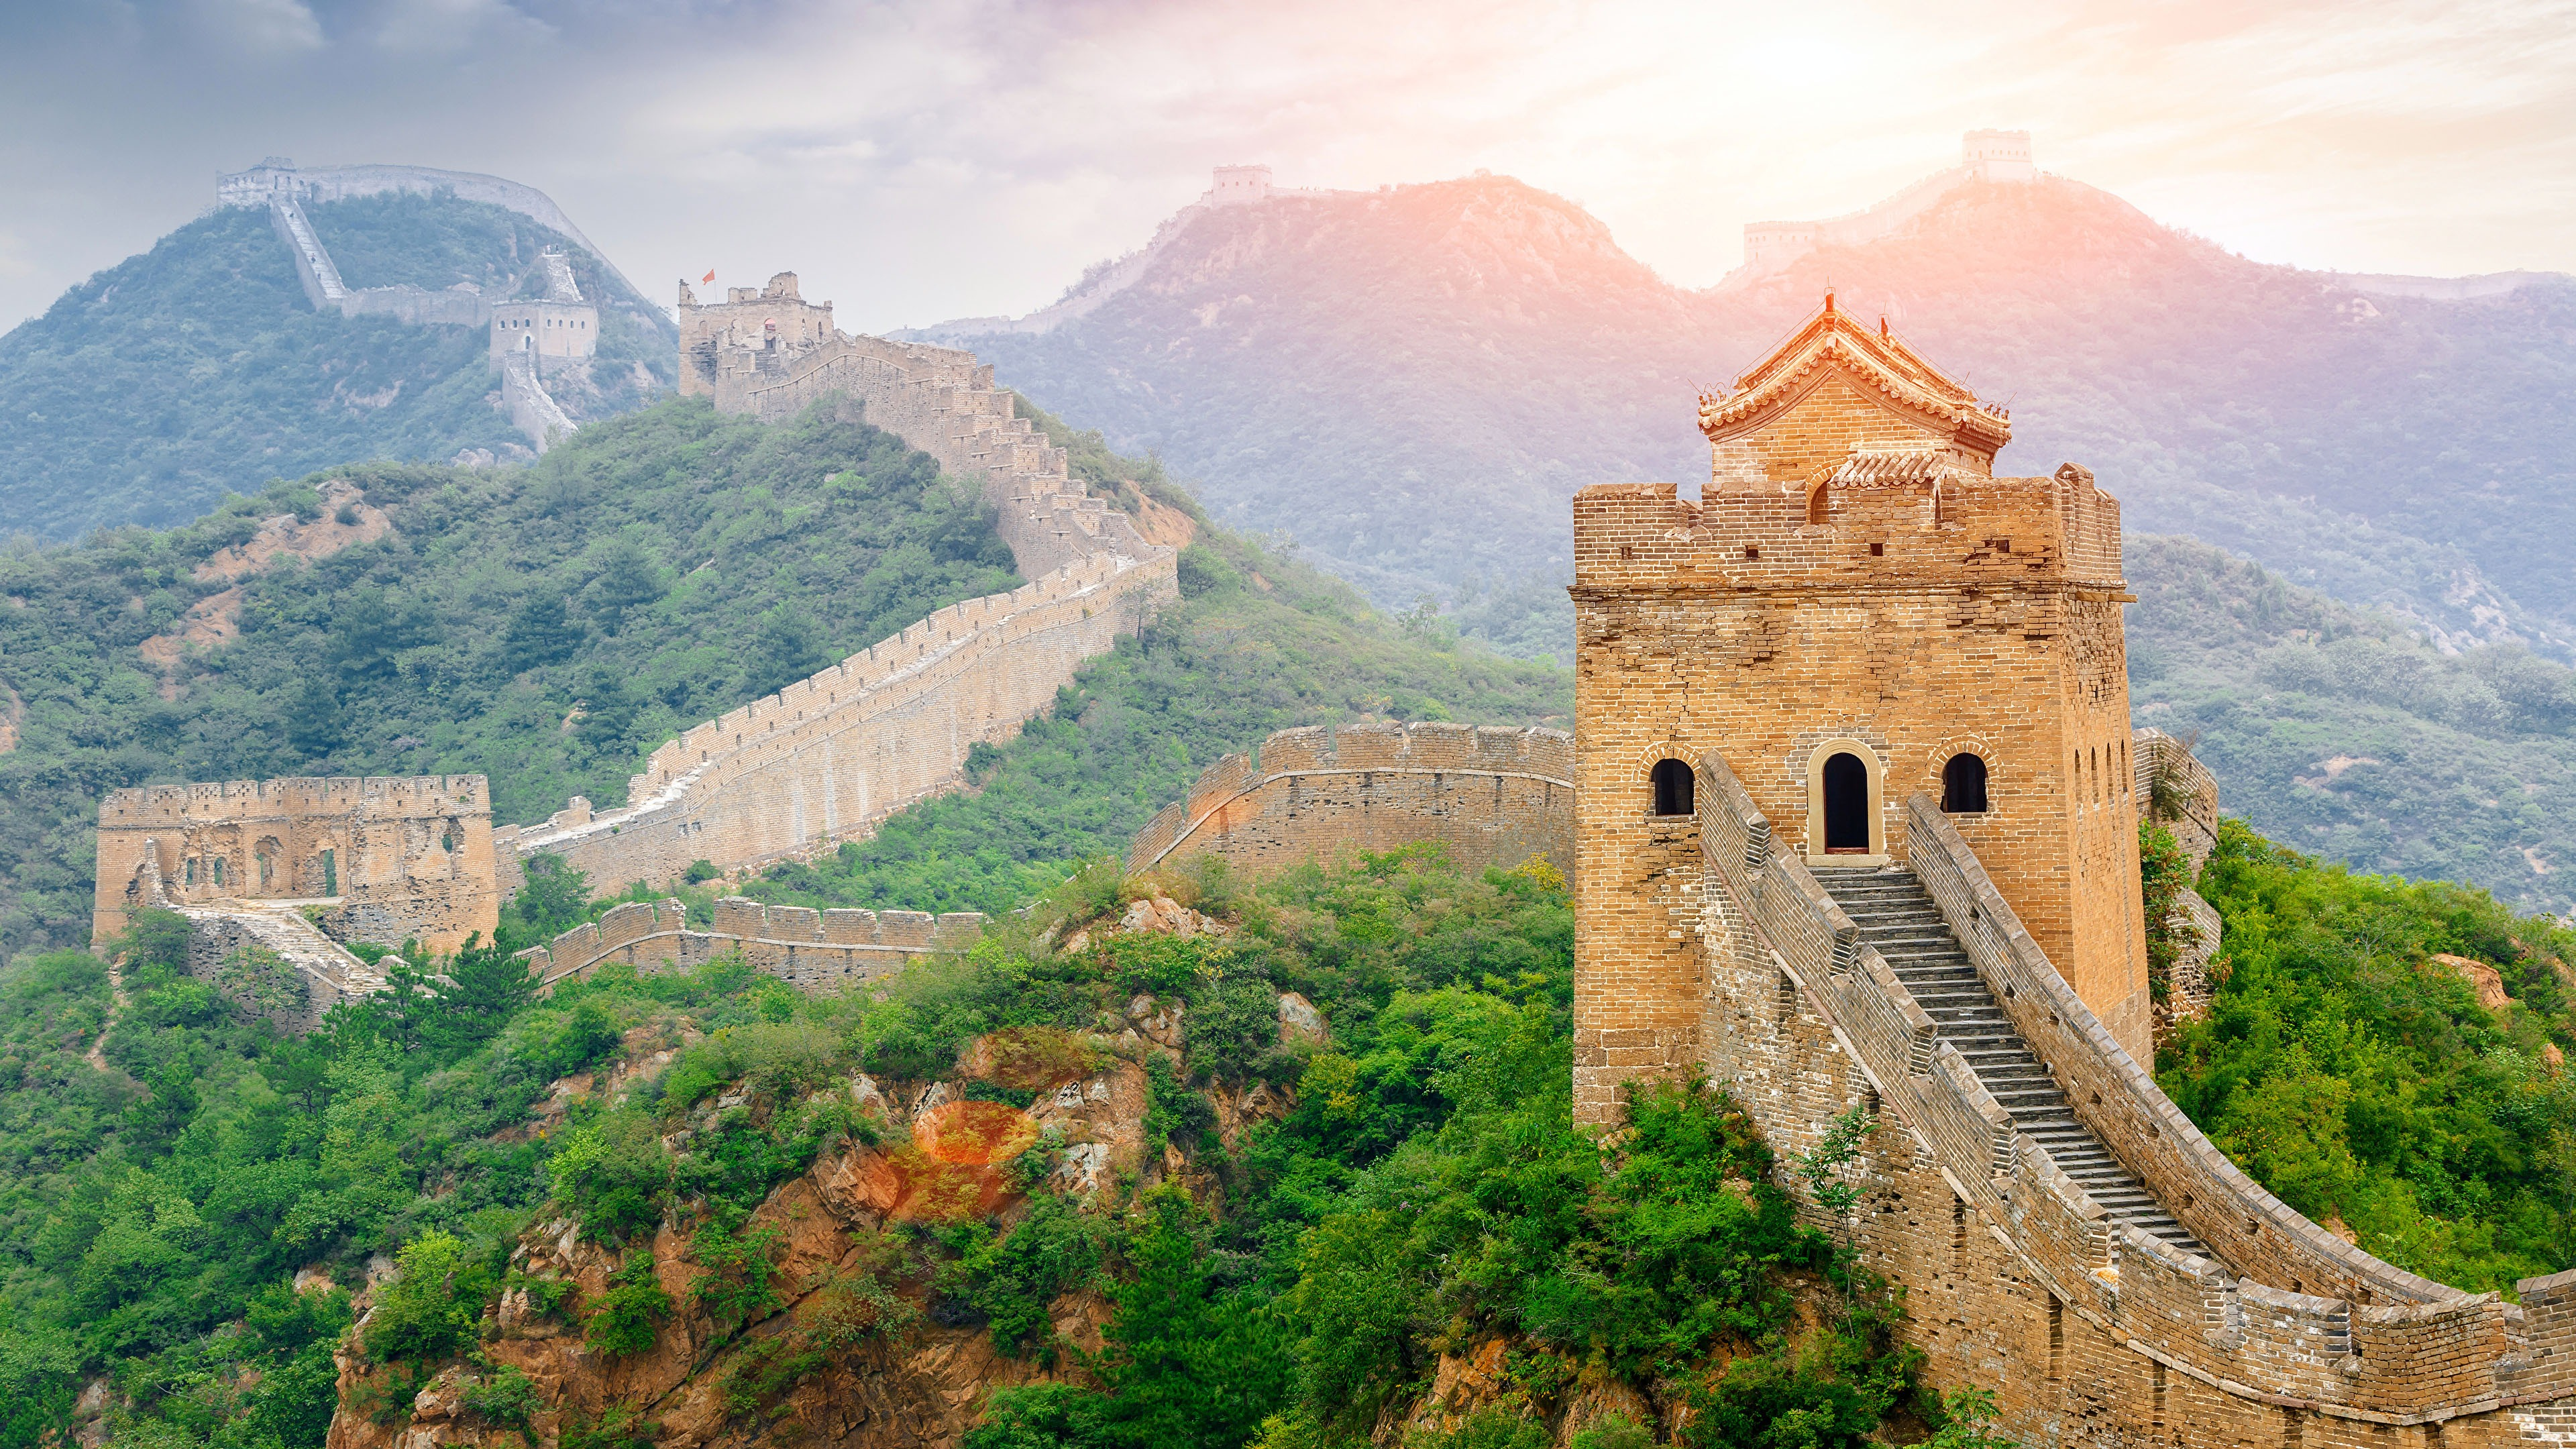 Great Wall China Scenic Spots Sunlight Scenery Preview